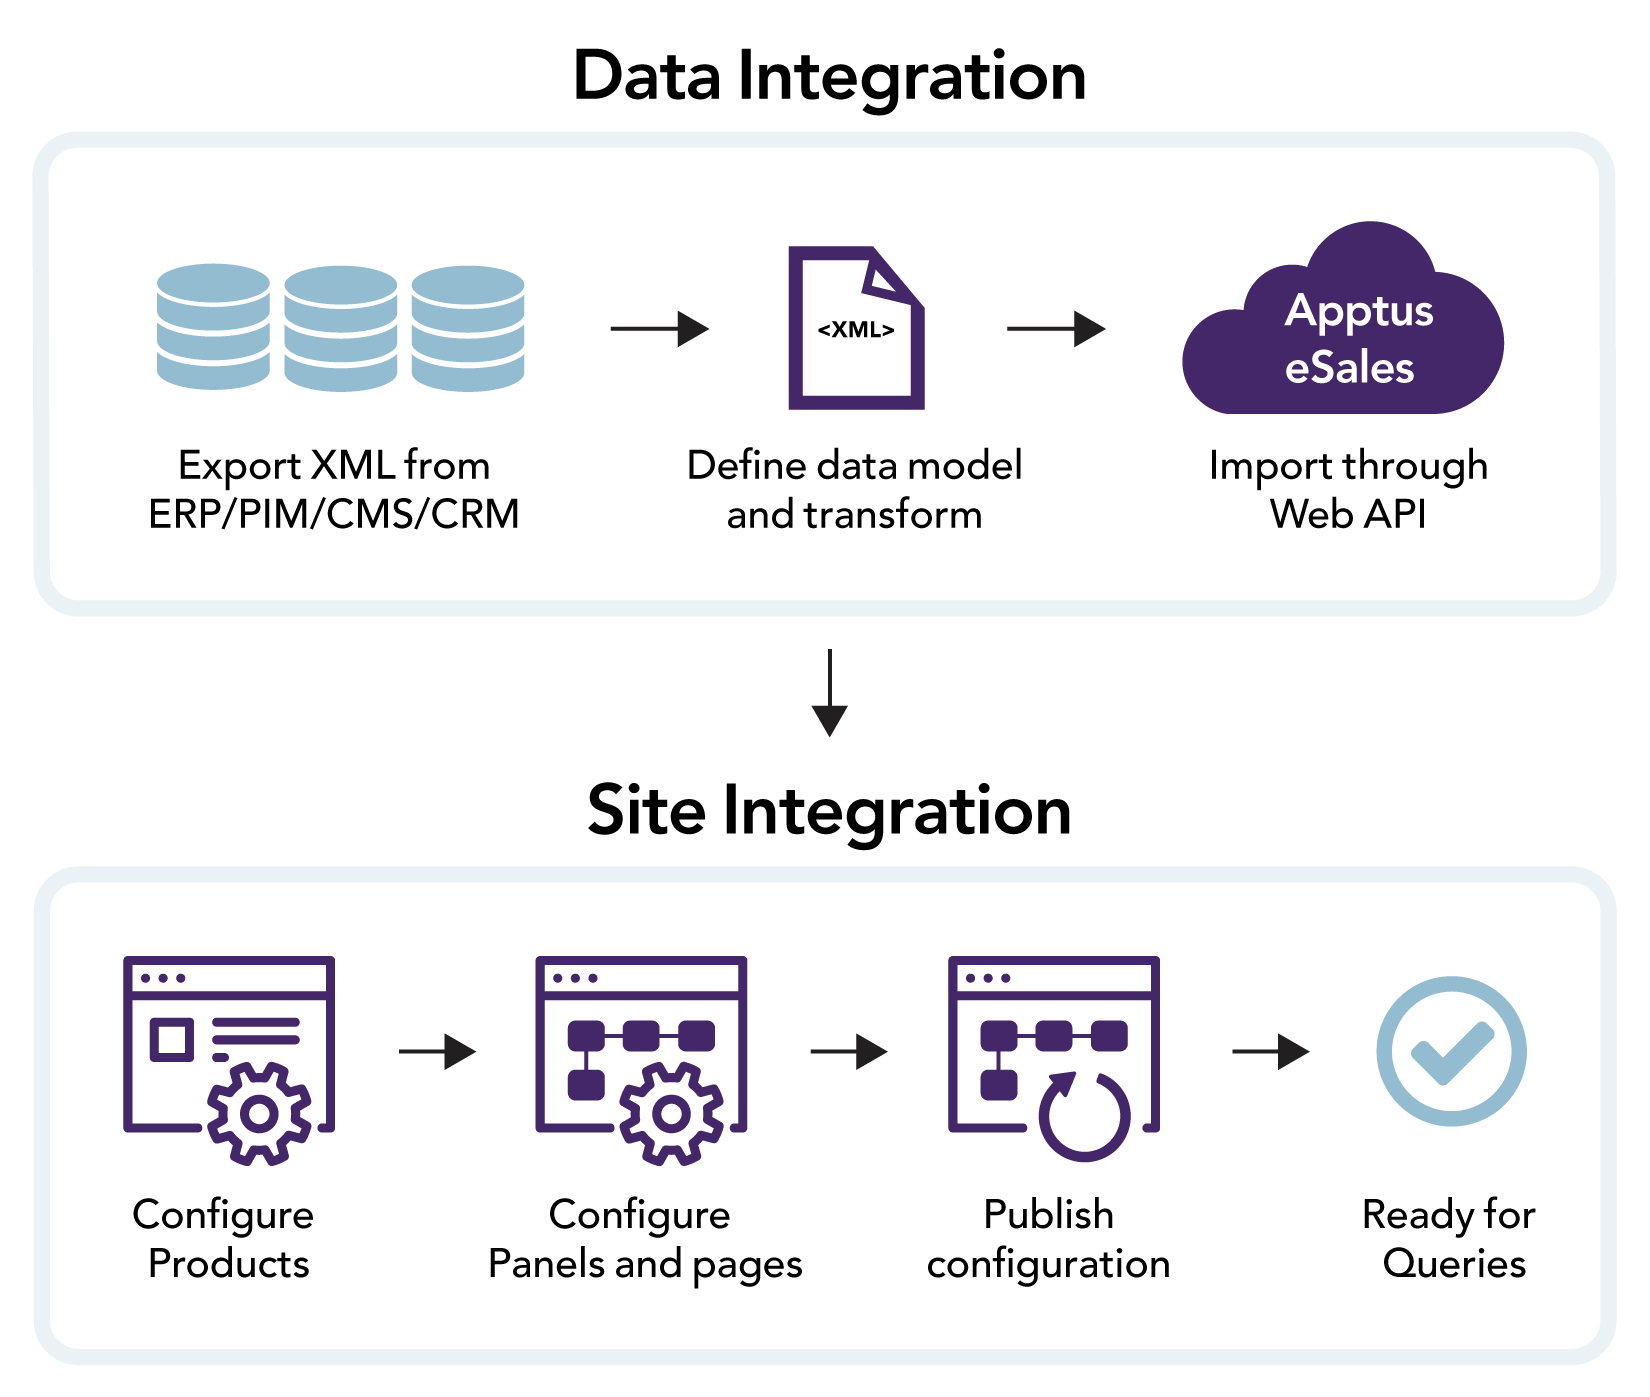 Graphic showing the integration steps with Apptus eSales Cloud and the Web API